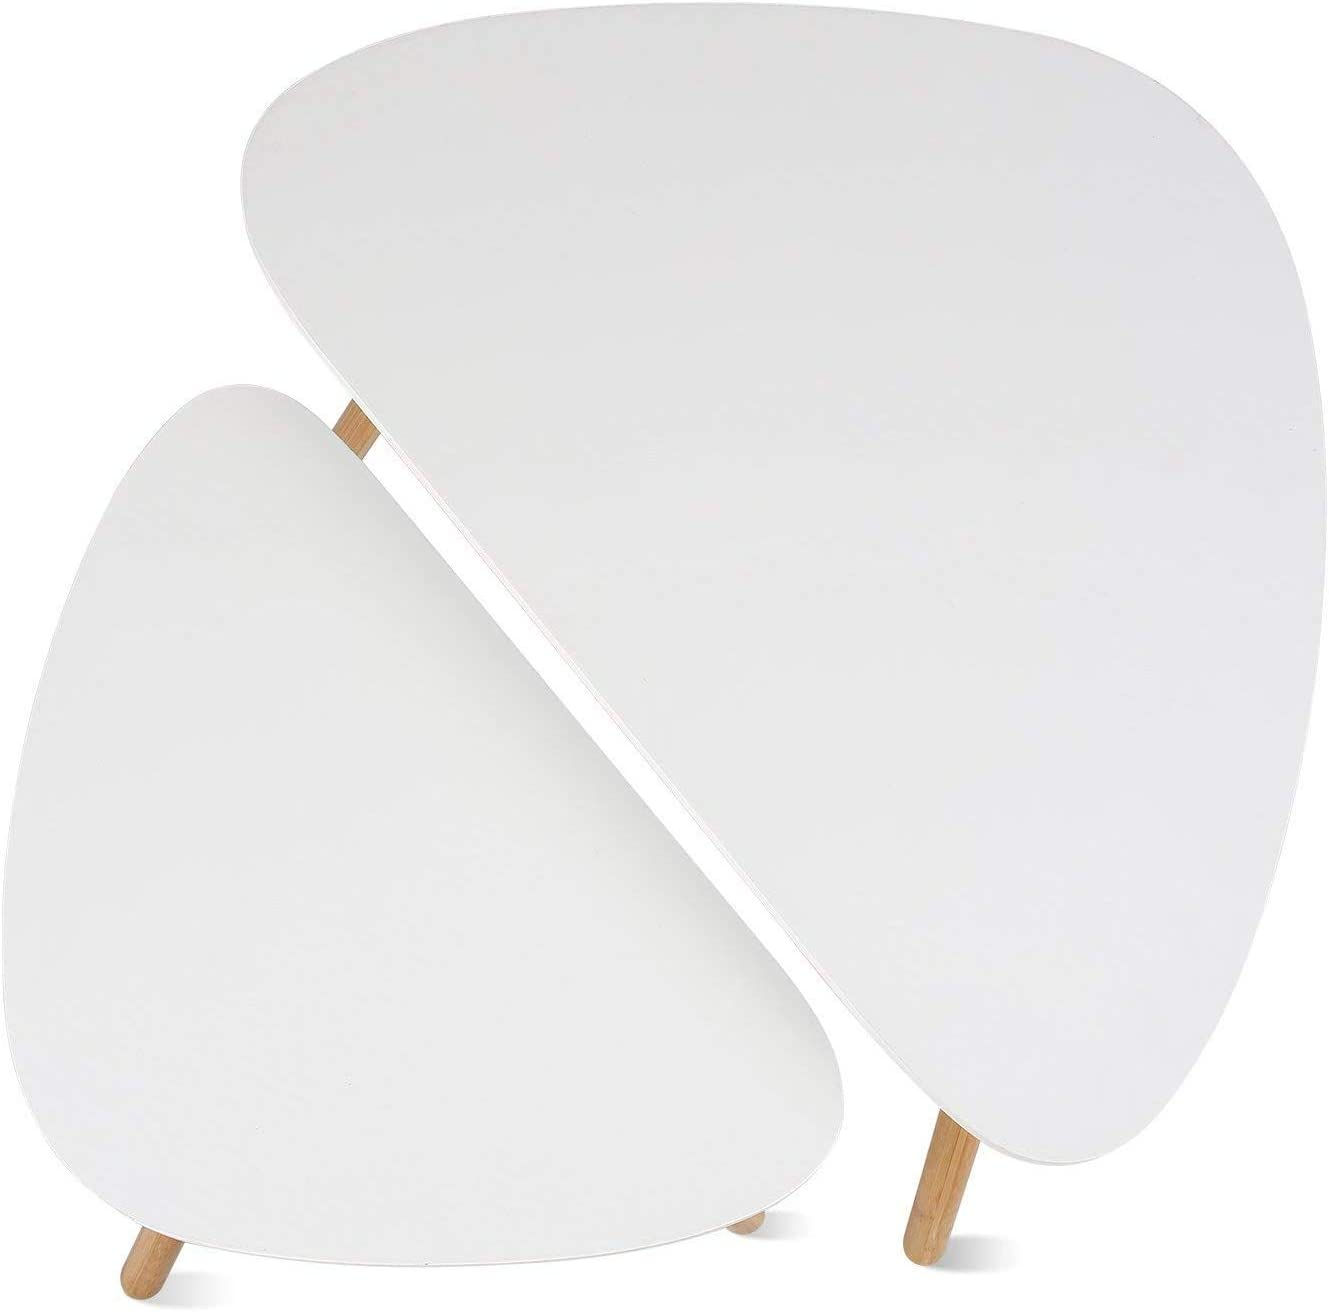 45x29.5x40cm small 60x39.5x45cm NOBRAND Side table white coffee table round living room table Scandinavian coffee table small nesting table set large